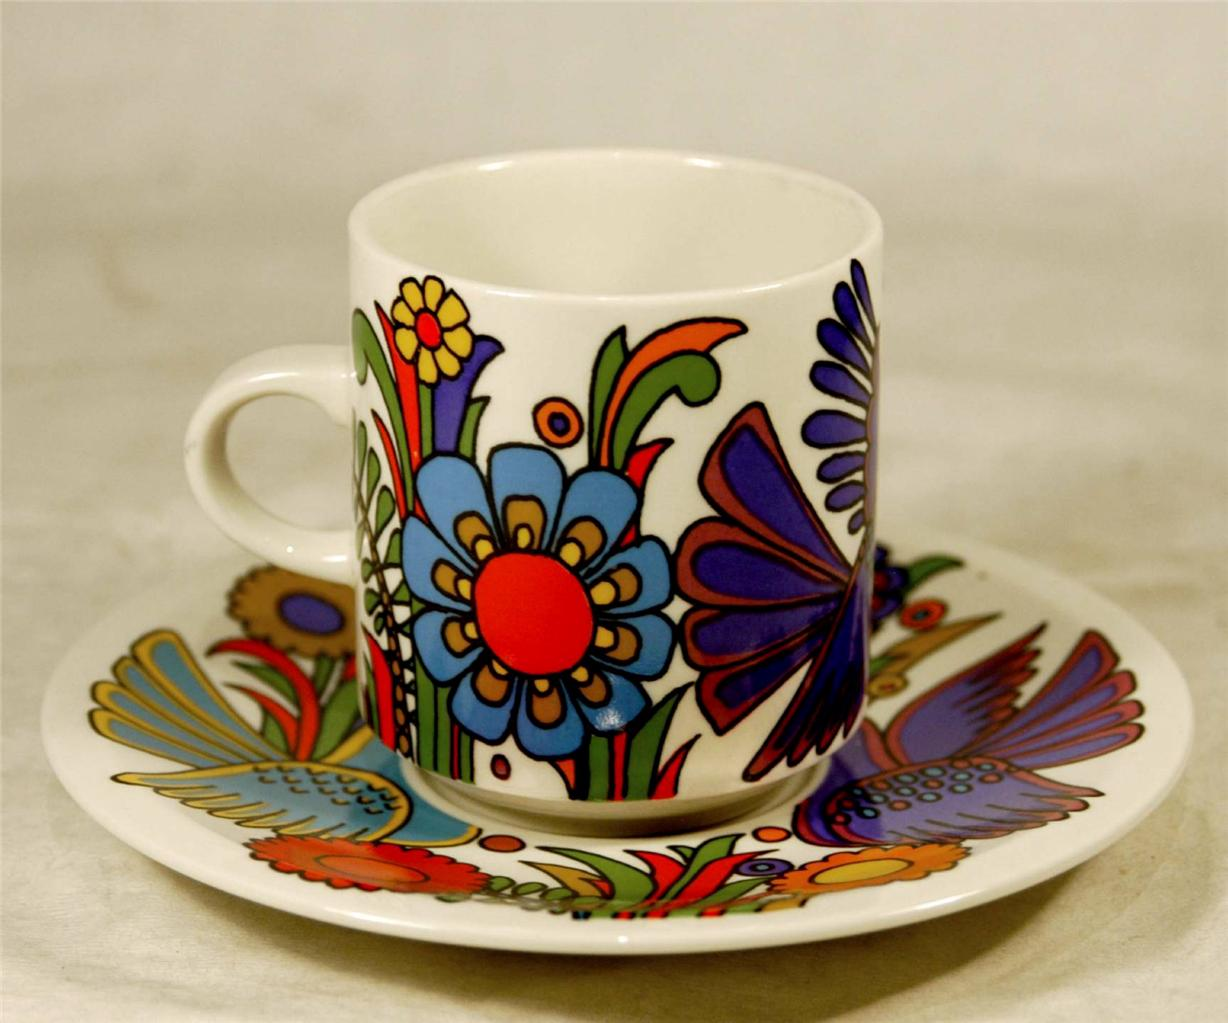 Vintage villeroy and boch acapulco coffee mug cup and saucer funky retro ebay - Funky espresso cups ...